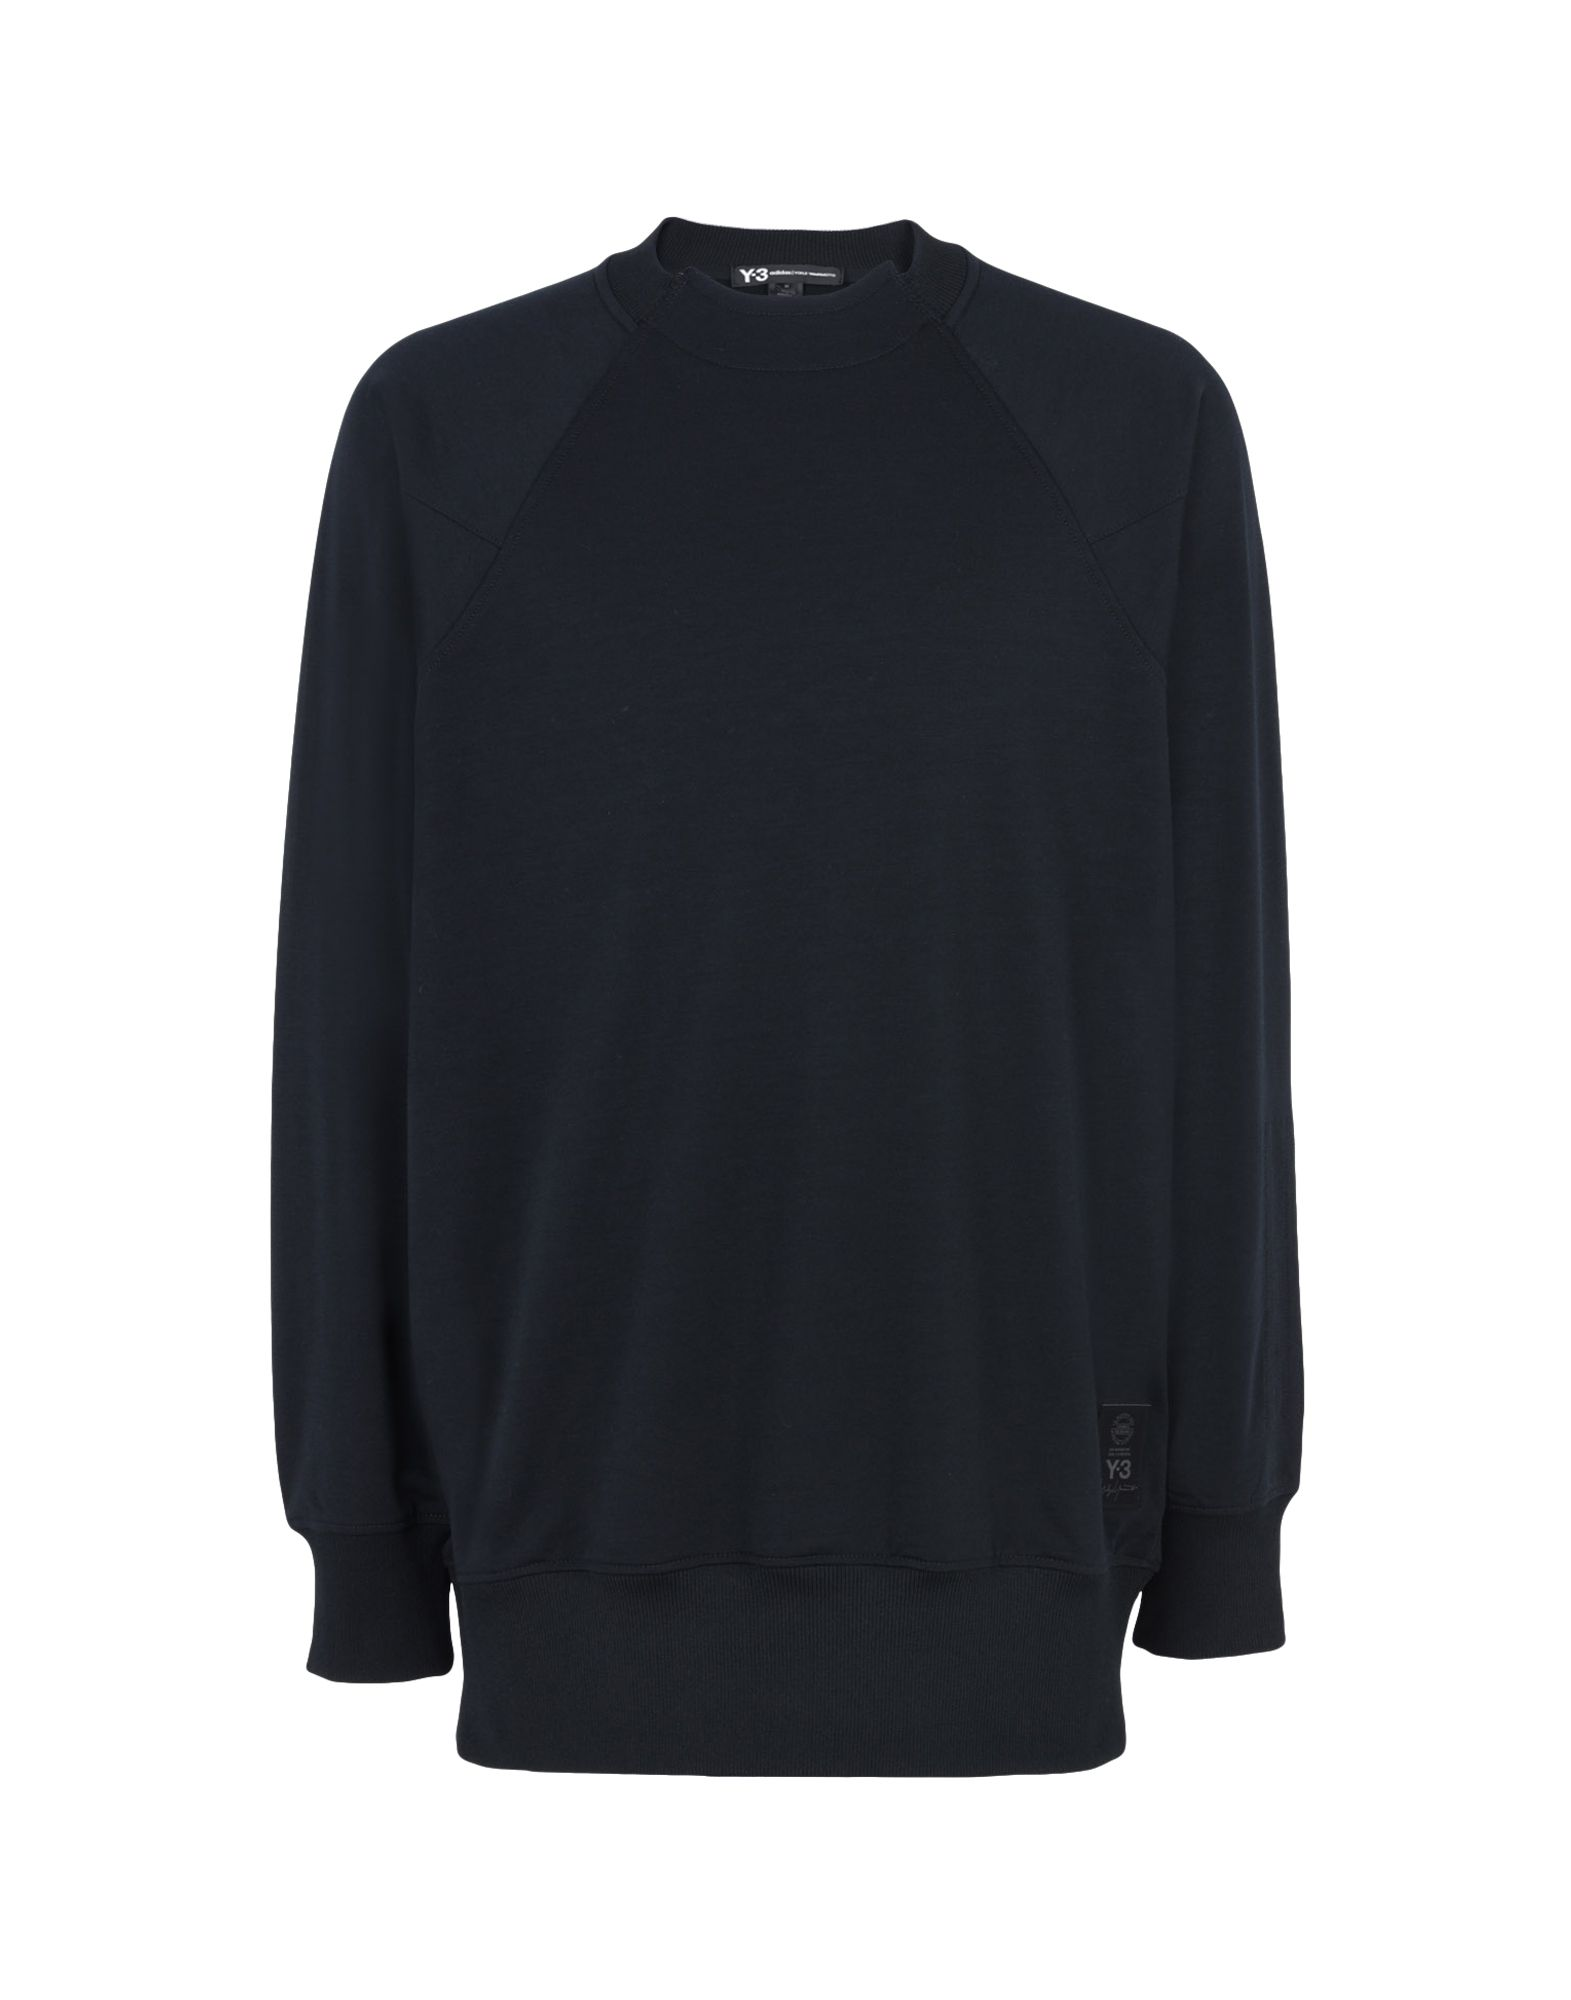 Y-3 Y-3 FRENCH TERRY SWEATER Sweatshirt Man f